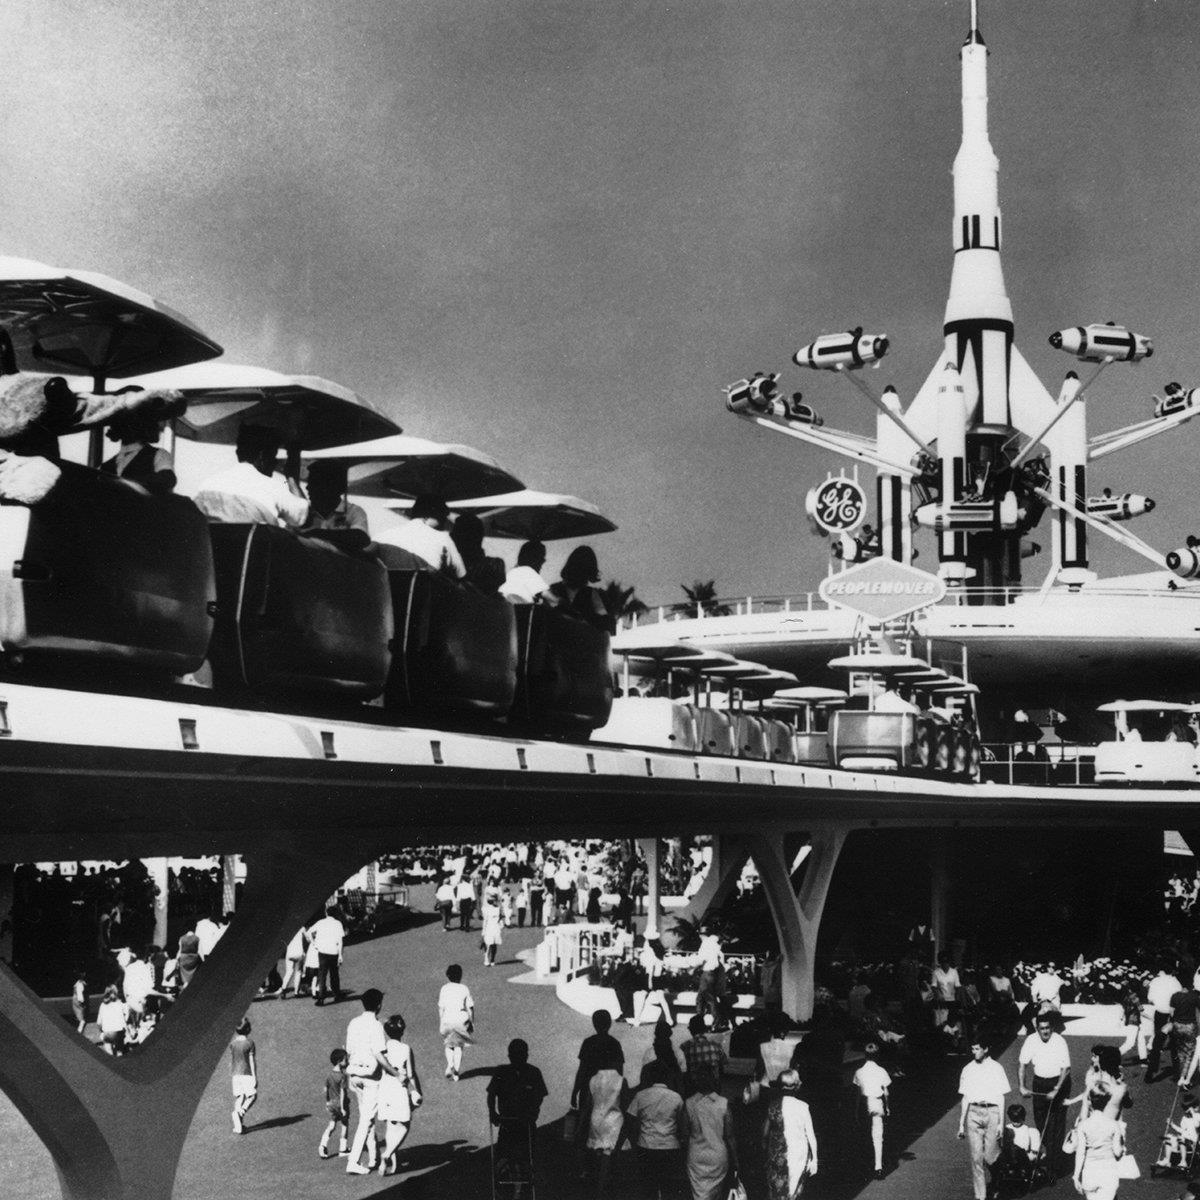 """Slide 4 of 19: Pluto catches a ride on Disneyland's """"People Mover"""" attraction—an innovative transportation ride that gave guests an overhead view of Tomorrowland."""